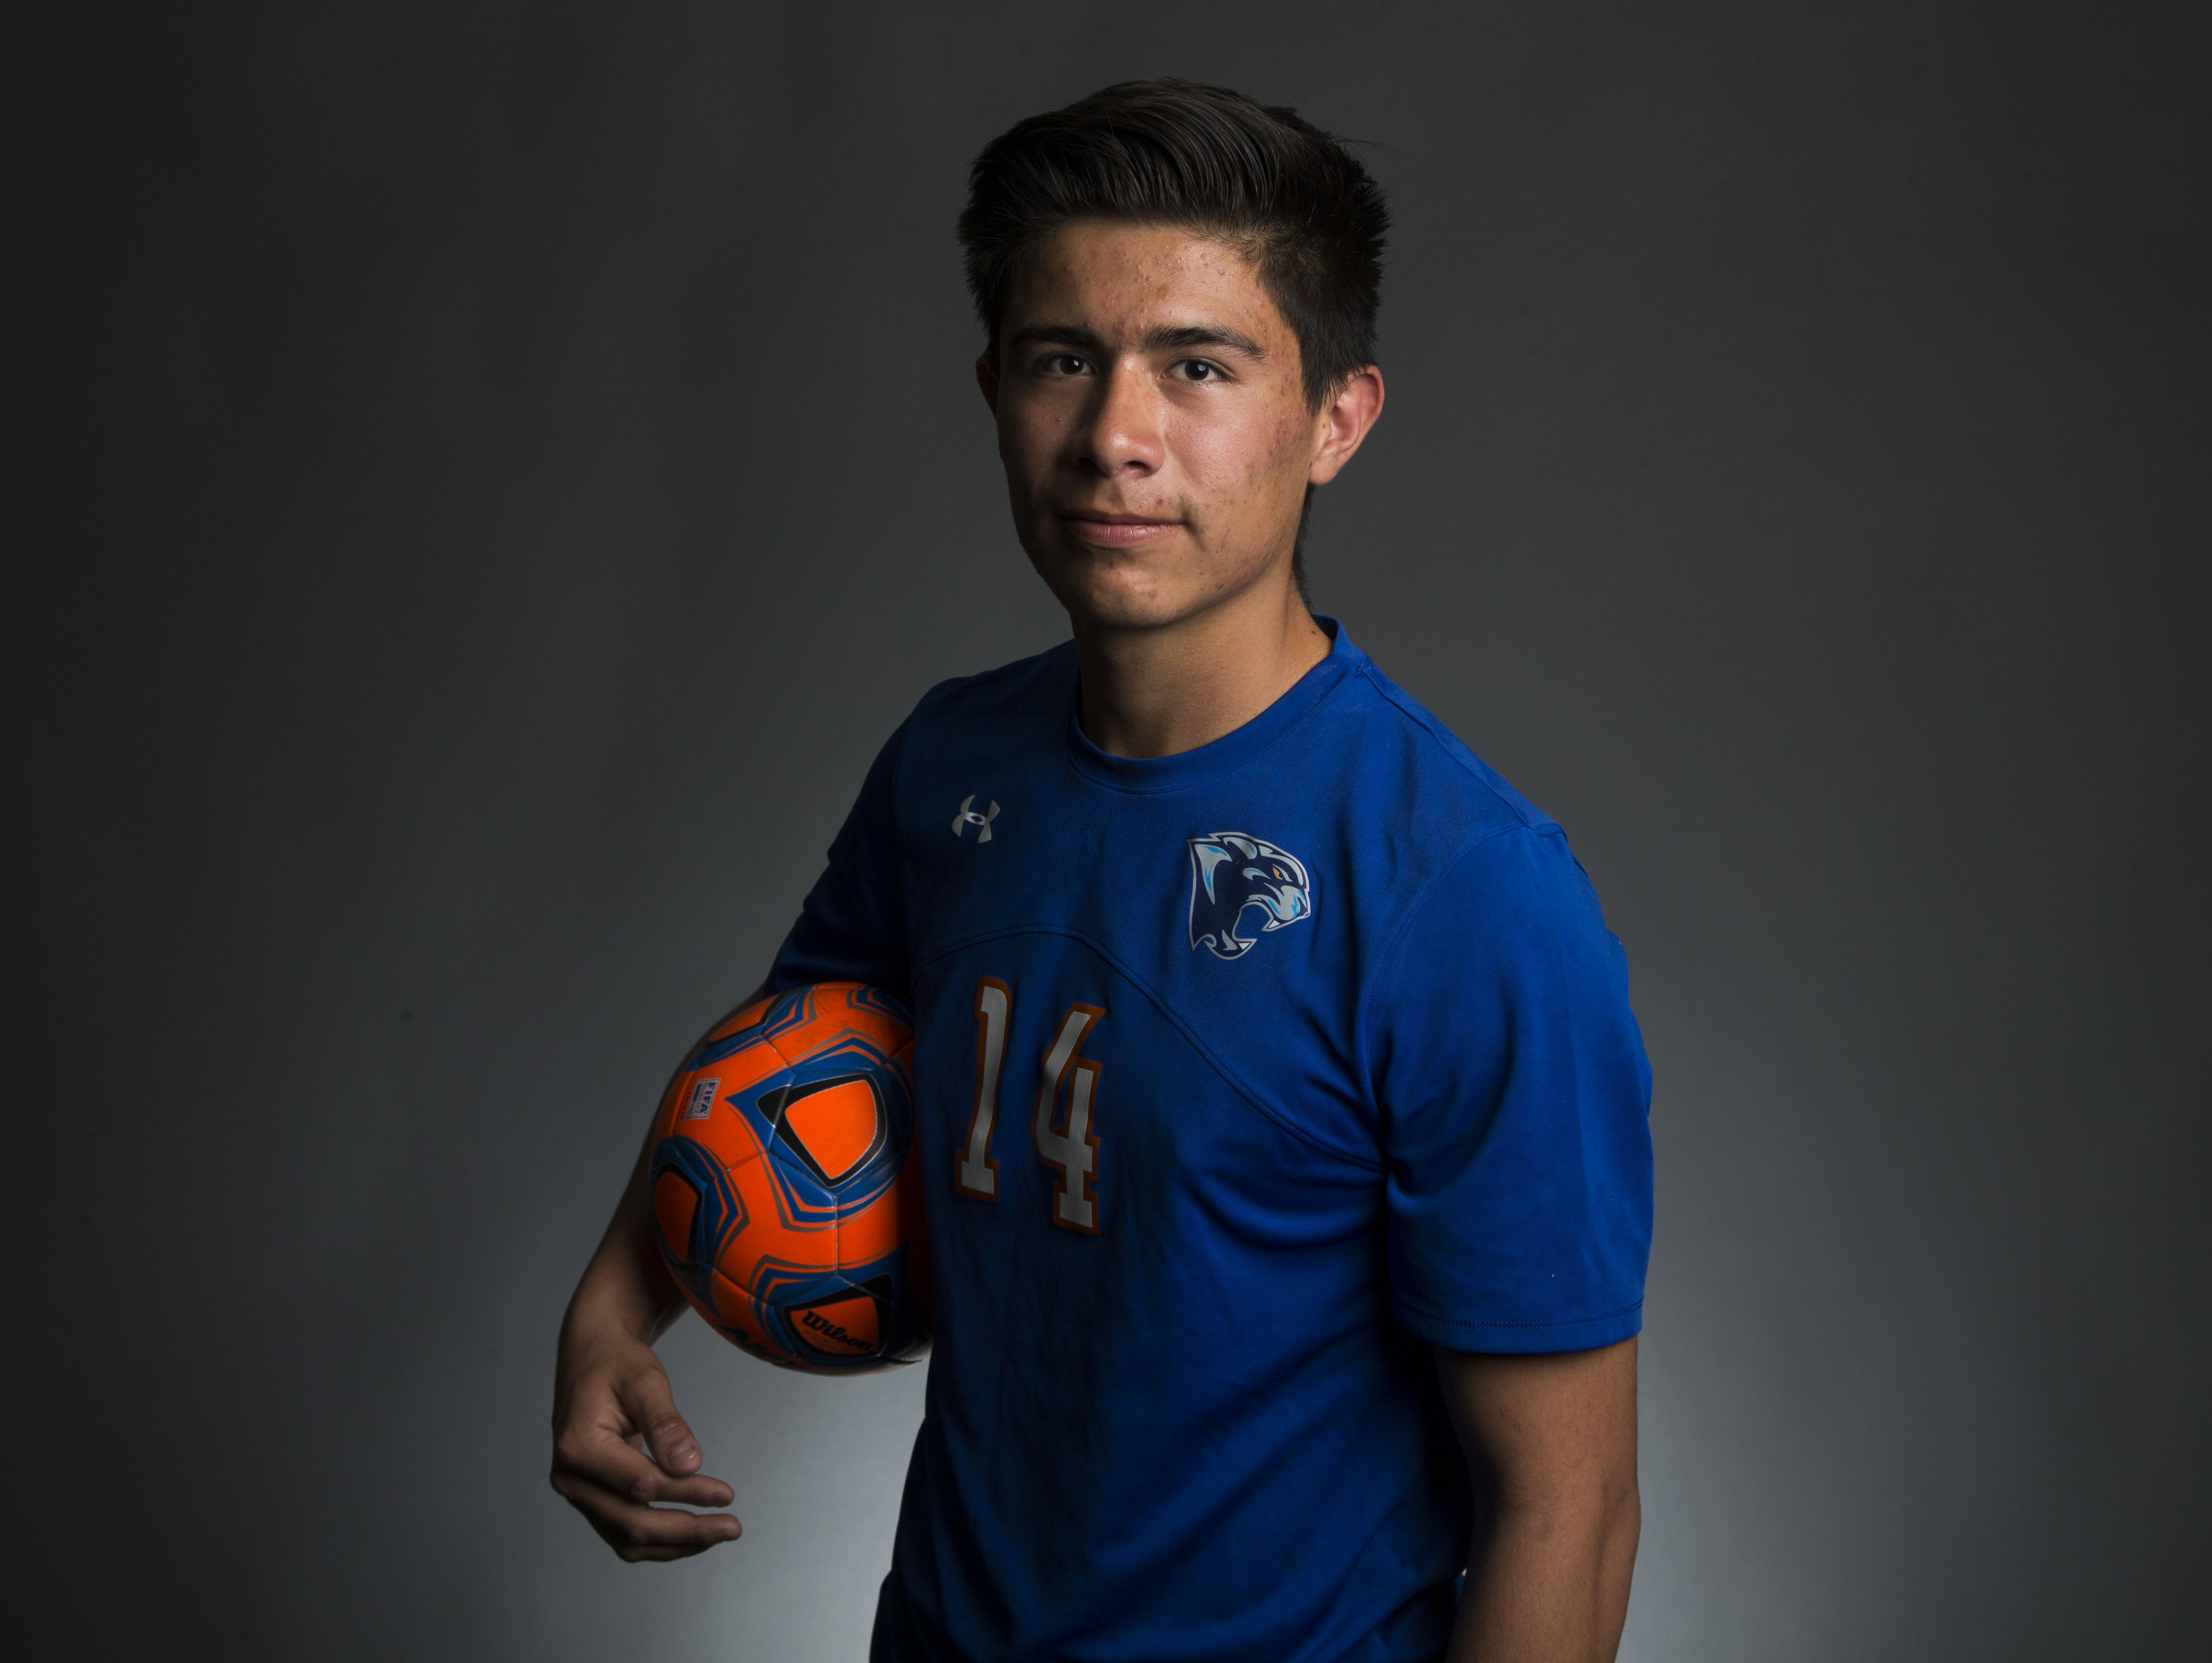 Chino Valley senior forward Arturo Gomez is a finalist for the azcentral.com Sports Awards Small Schools Boys Soccer Athlete of the Year award.